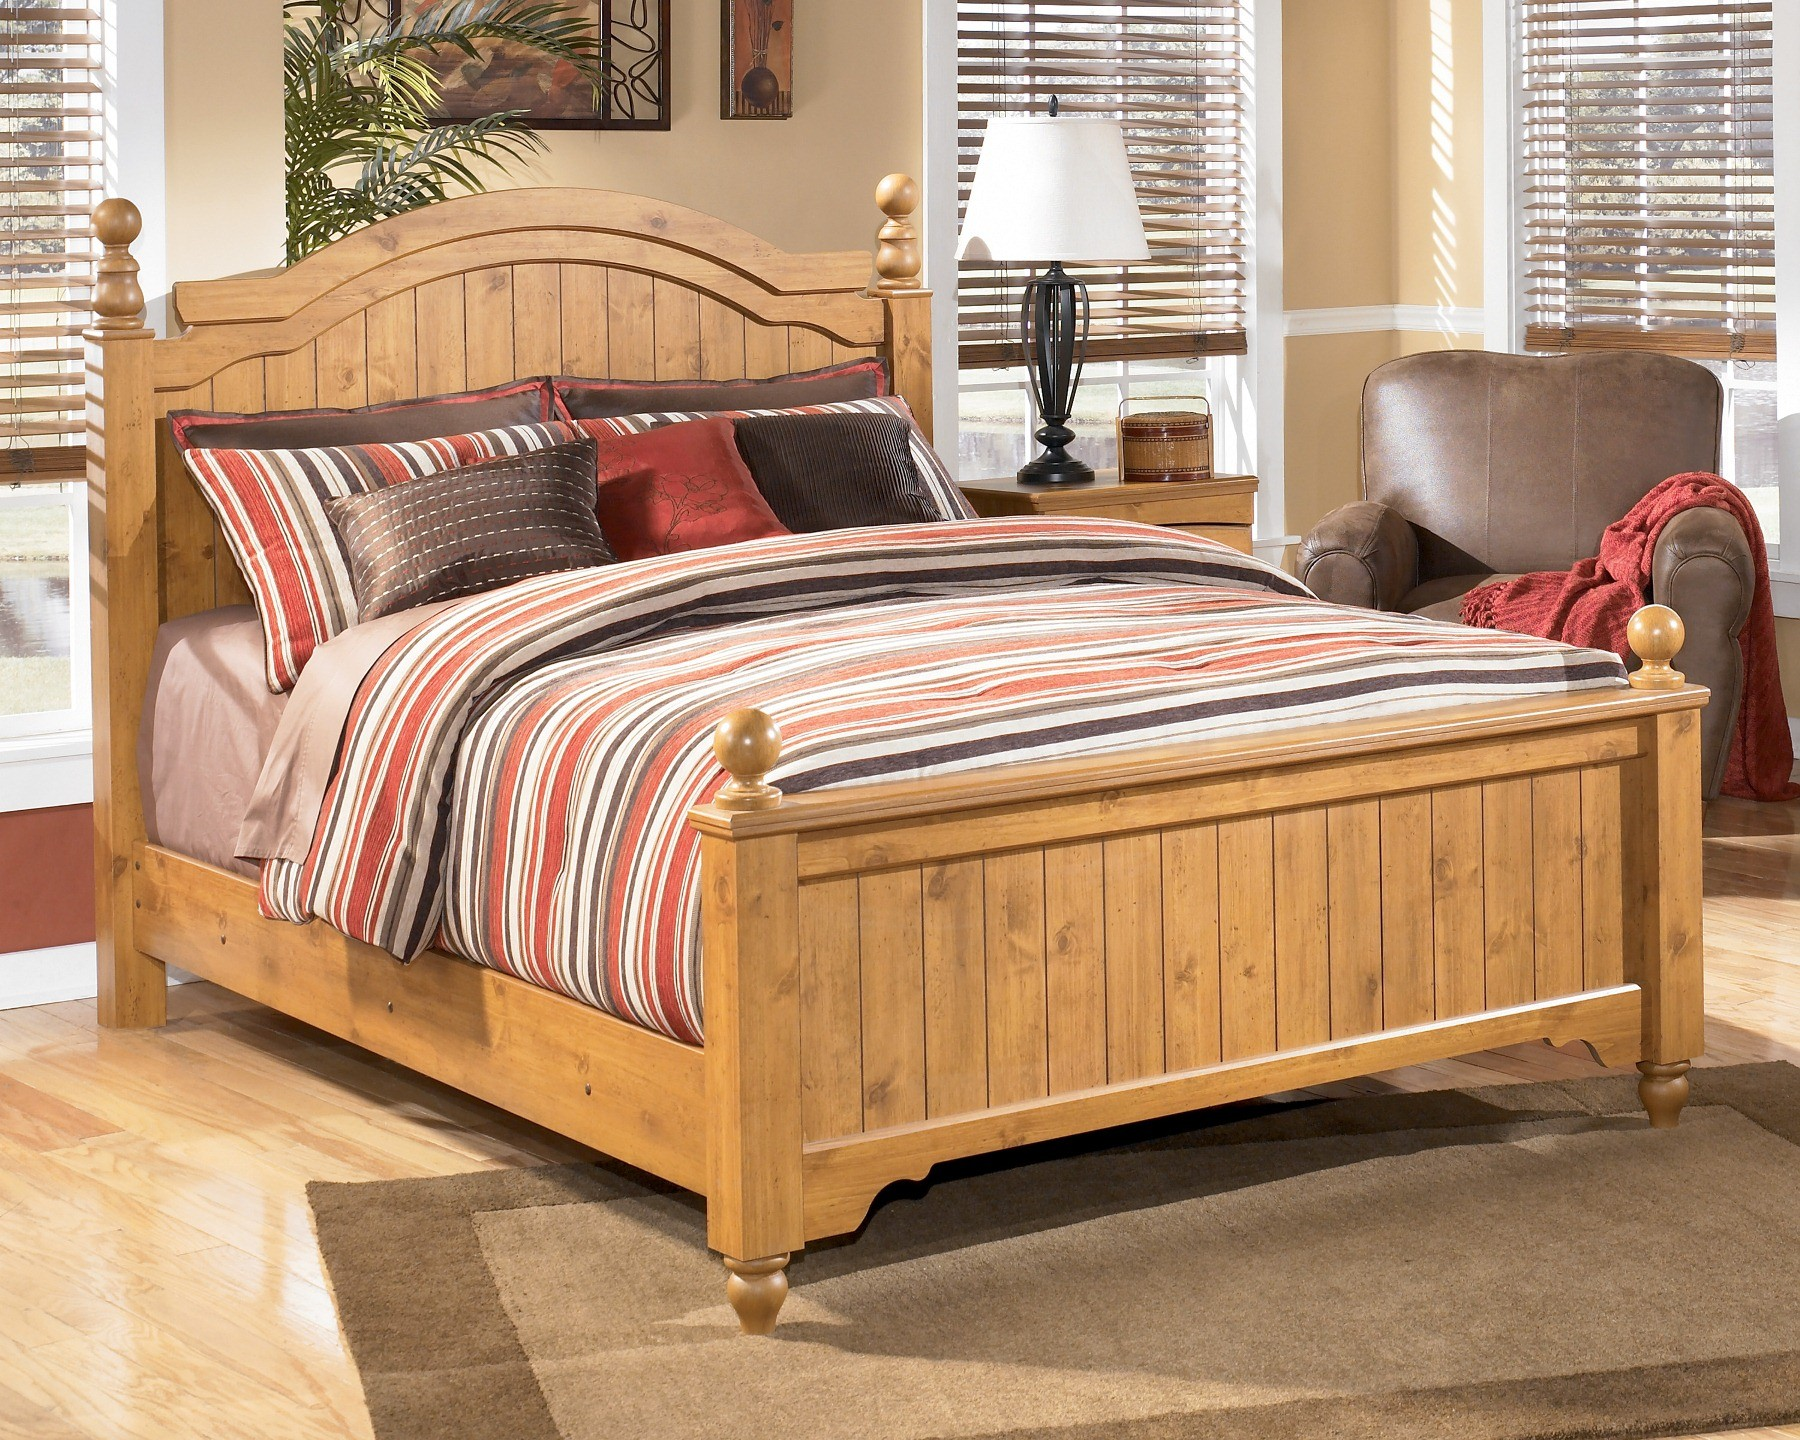 Ashley Stages Youth Poster Bed B233 52 51 83 Youth Beds